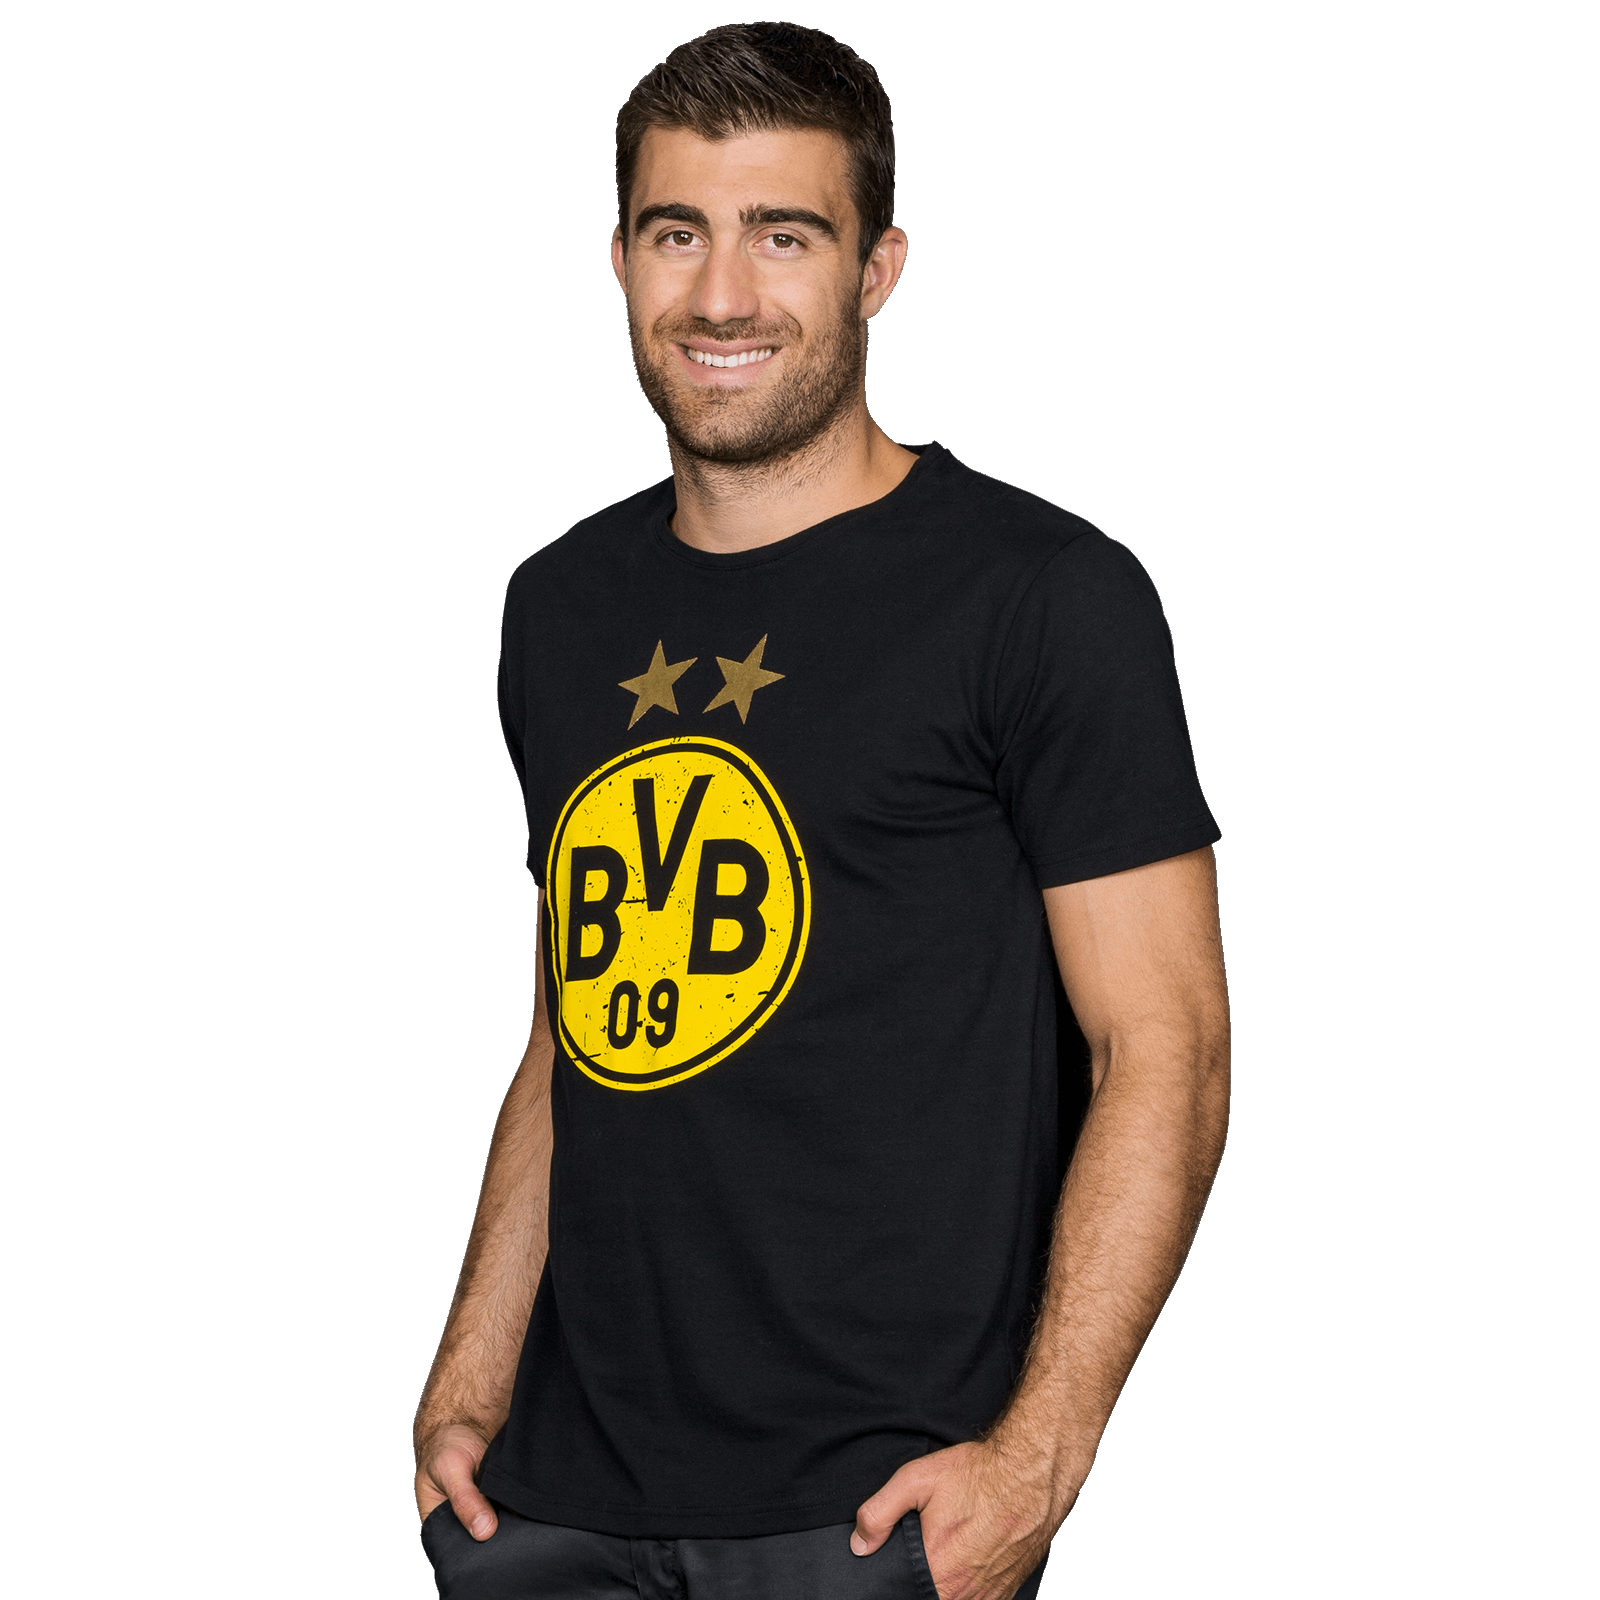 bvb t shirt shirts herren offizieller bvb online fanshop. Black Bedroom Furniture Sets. Home Design Ideas